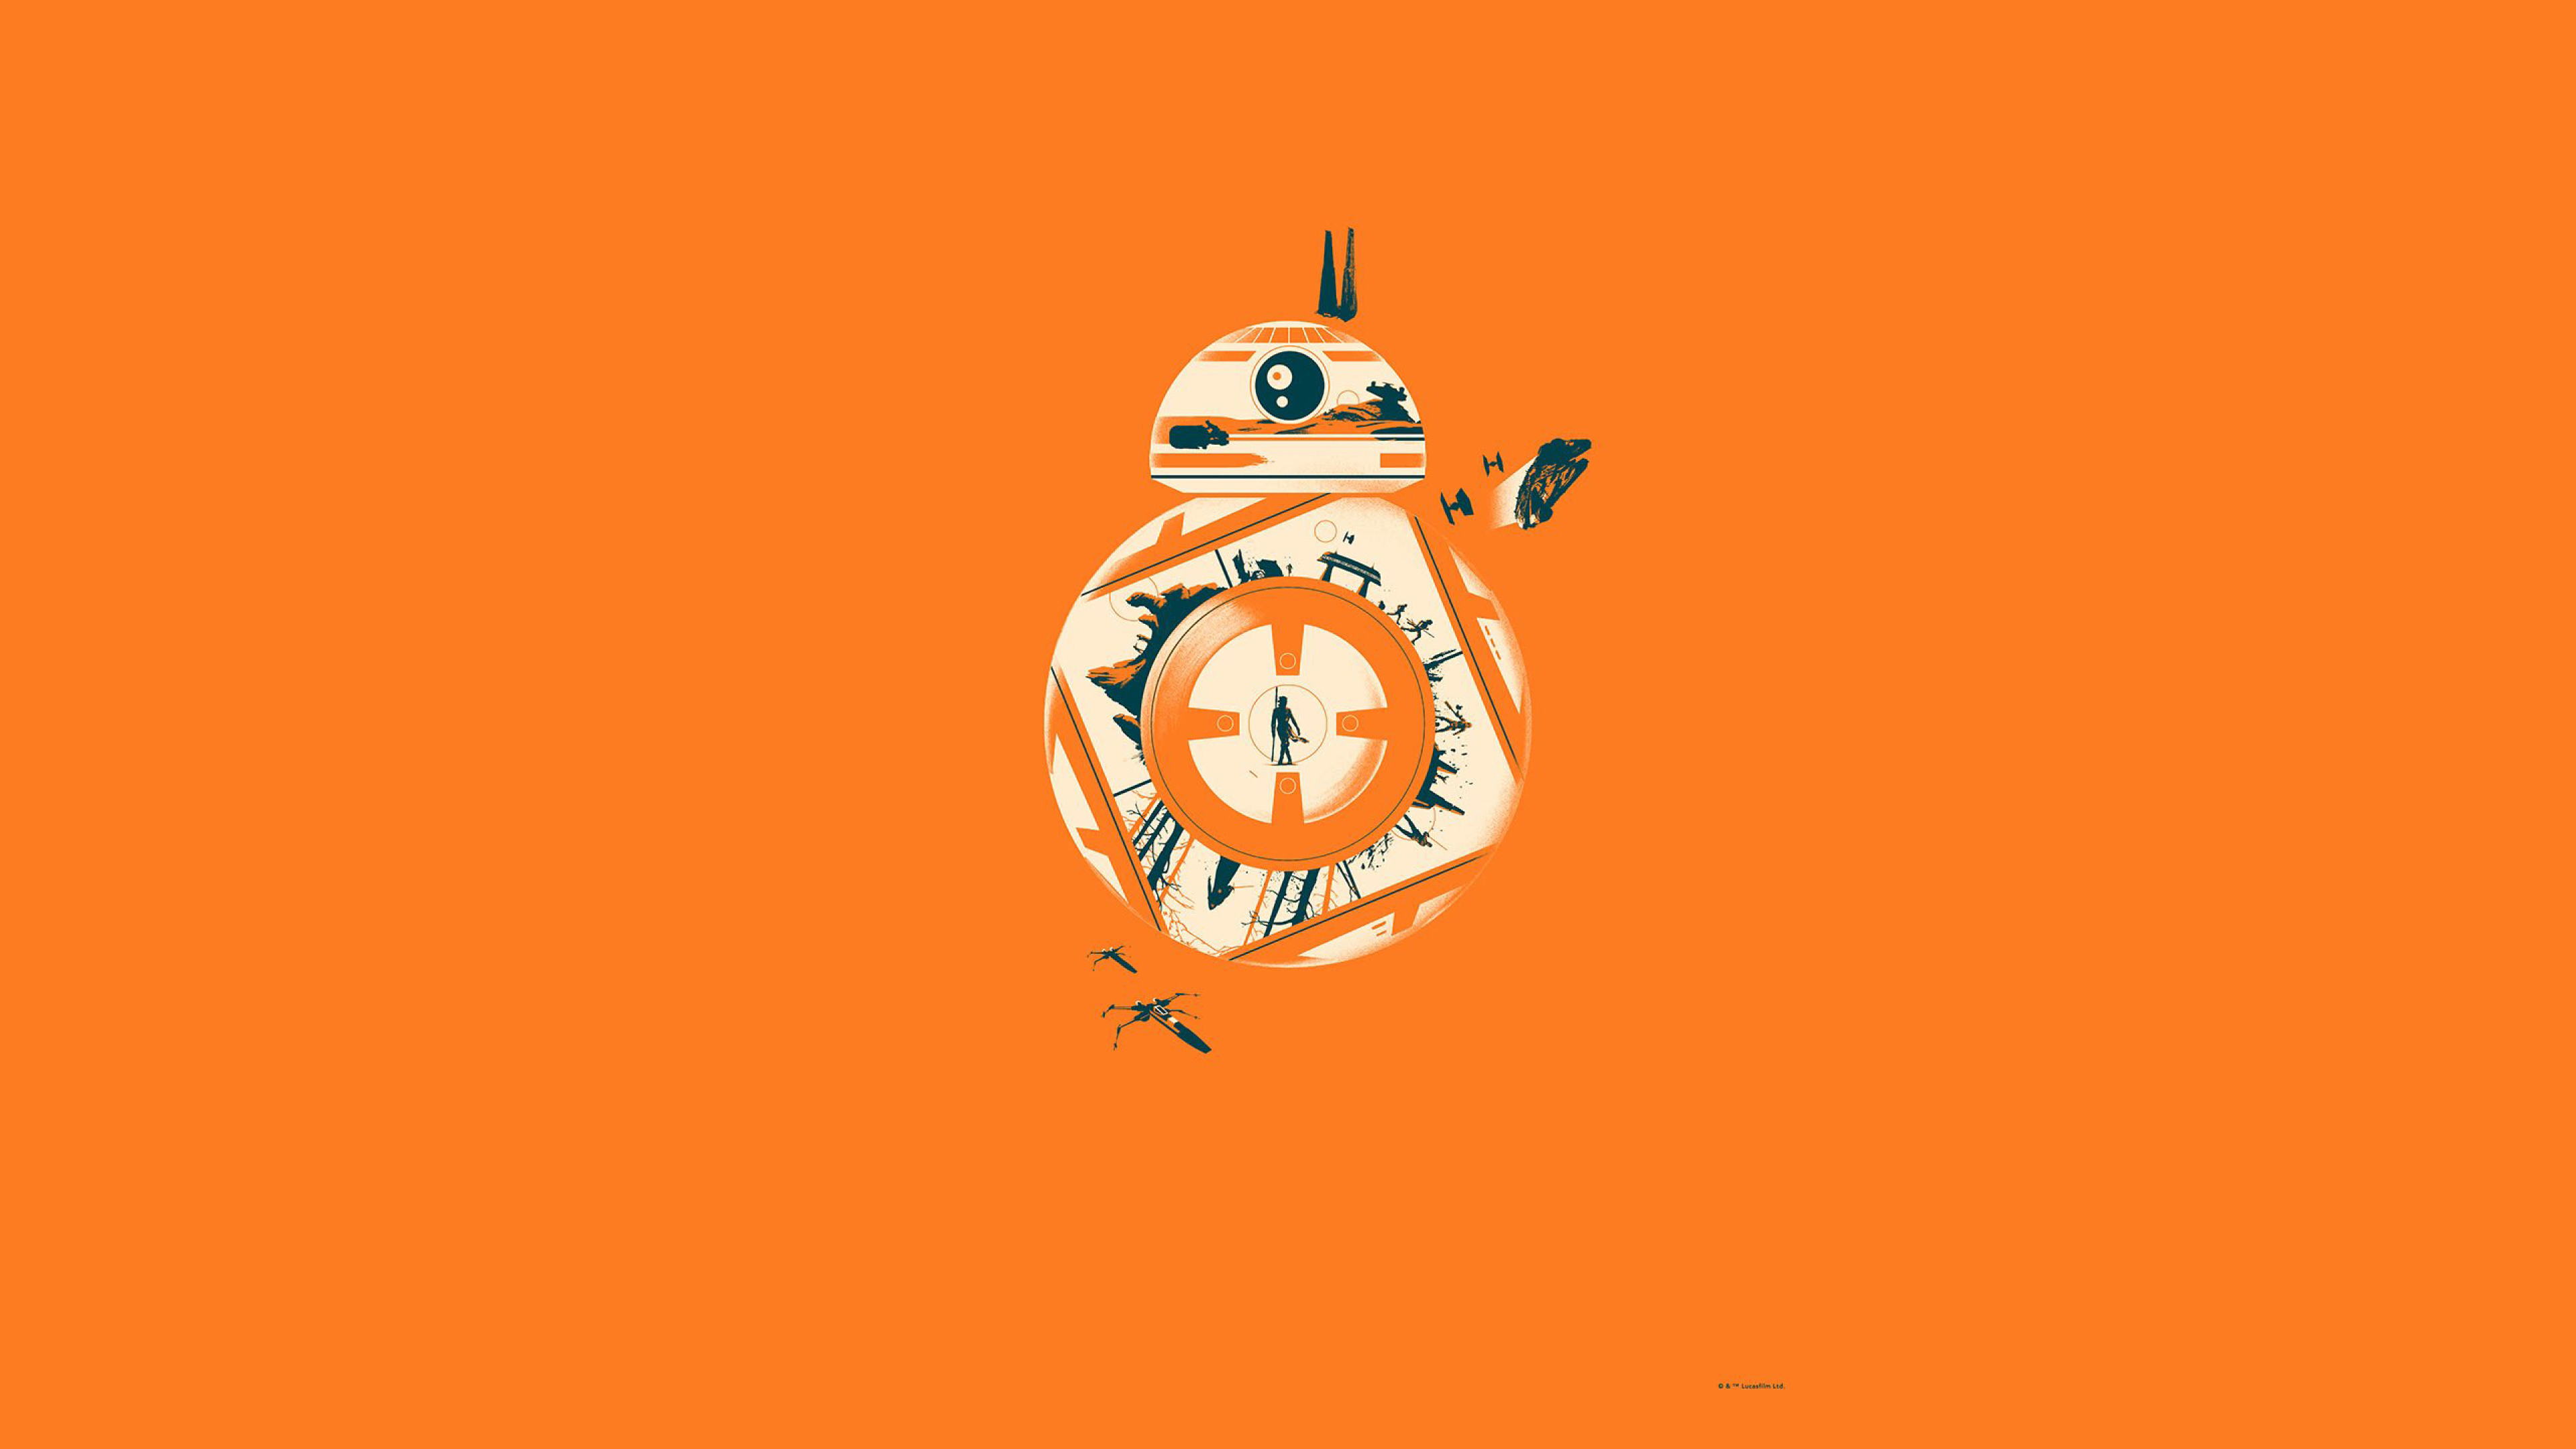 3840x2160 Bb 8 Star Wars 4k Wallpaper Hd Minimalist 4k Wallpapers Images Photos And Background